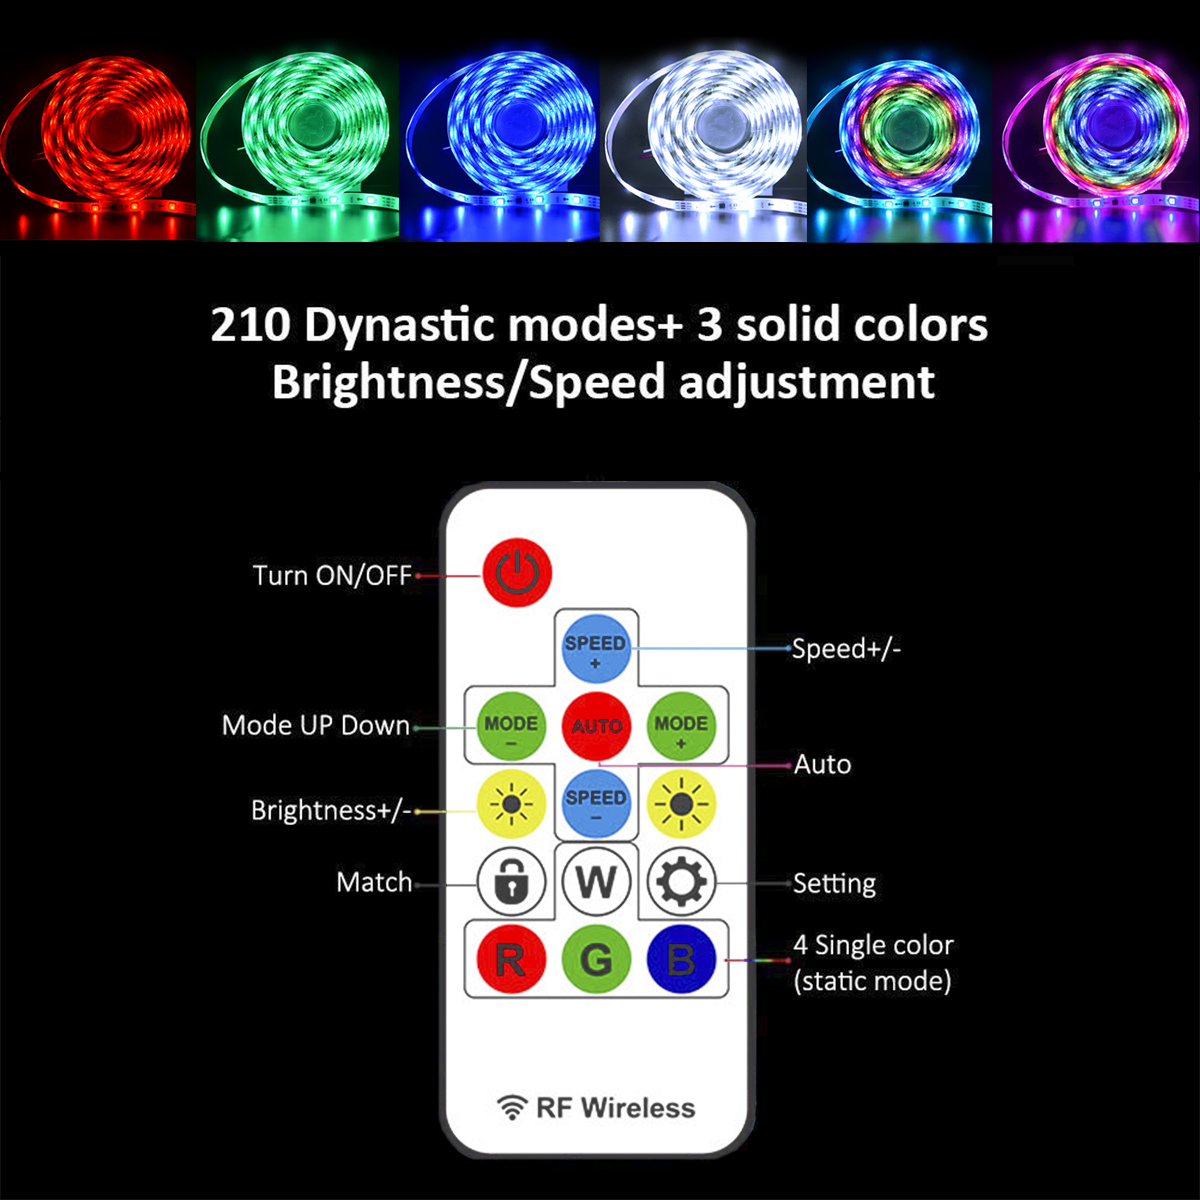 hight resolution of new upgraded 32 8 foot 10 meter waterproof dream color chasing digital addressable rgb flexible led strip light kit dc12v 300leds bluetooth music